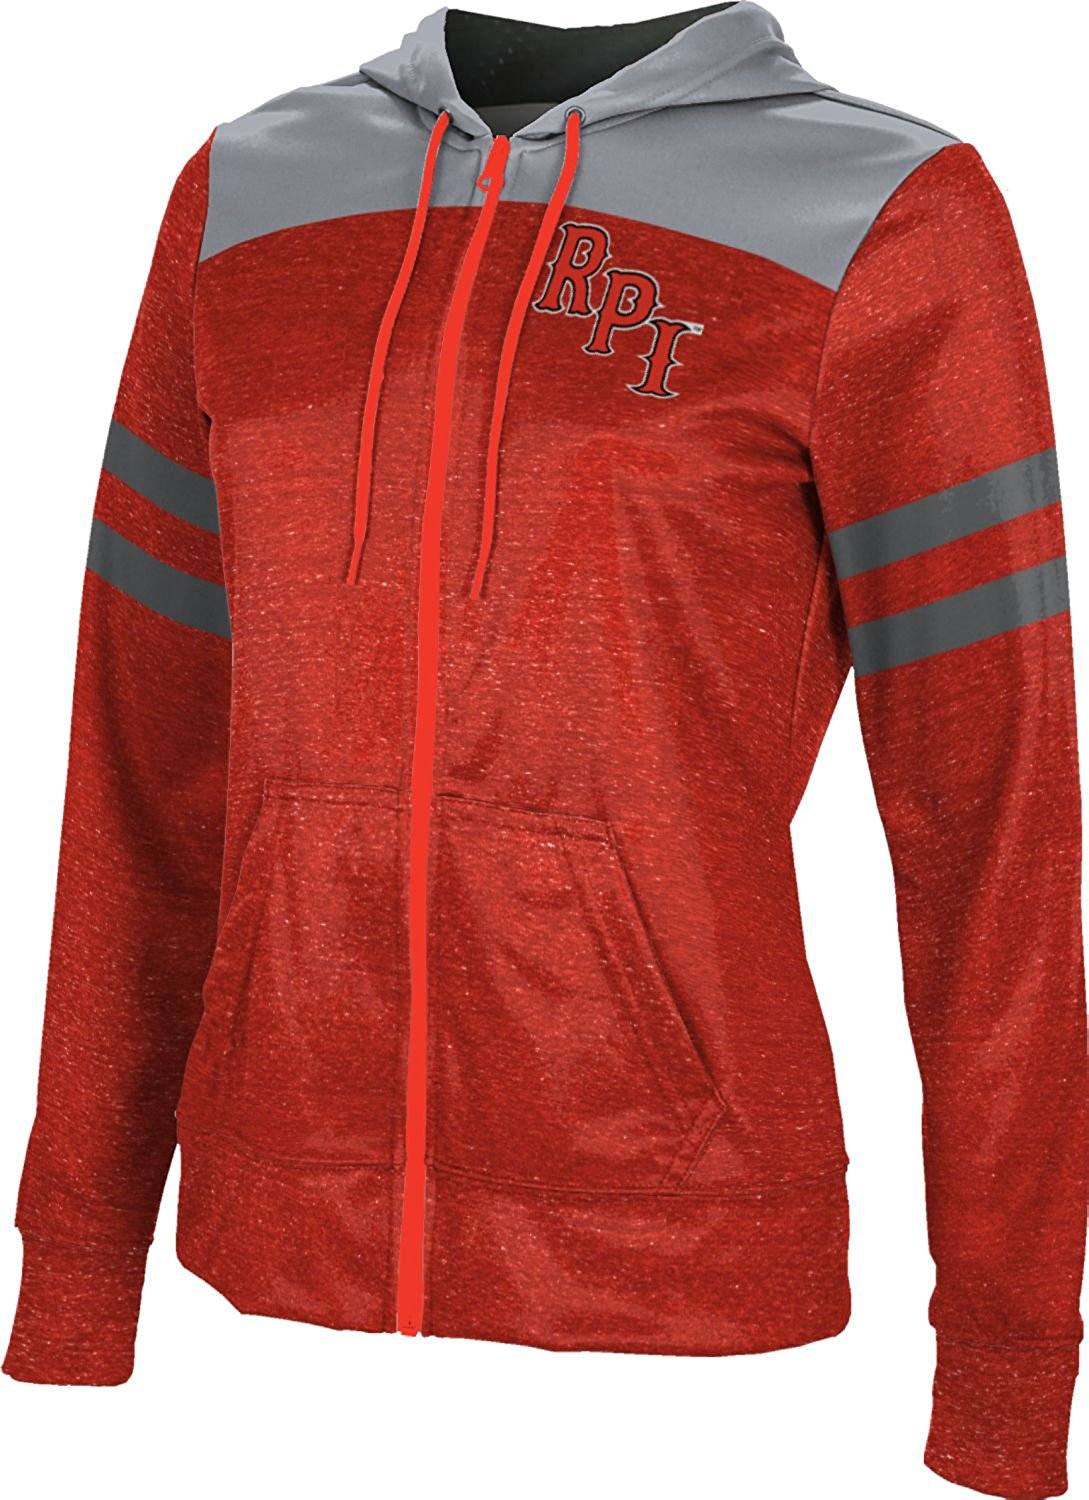 ProSphere Rensselaer Polytechnic Institute University Women's Fullzip Hoodie - Gameday